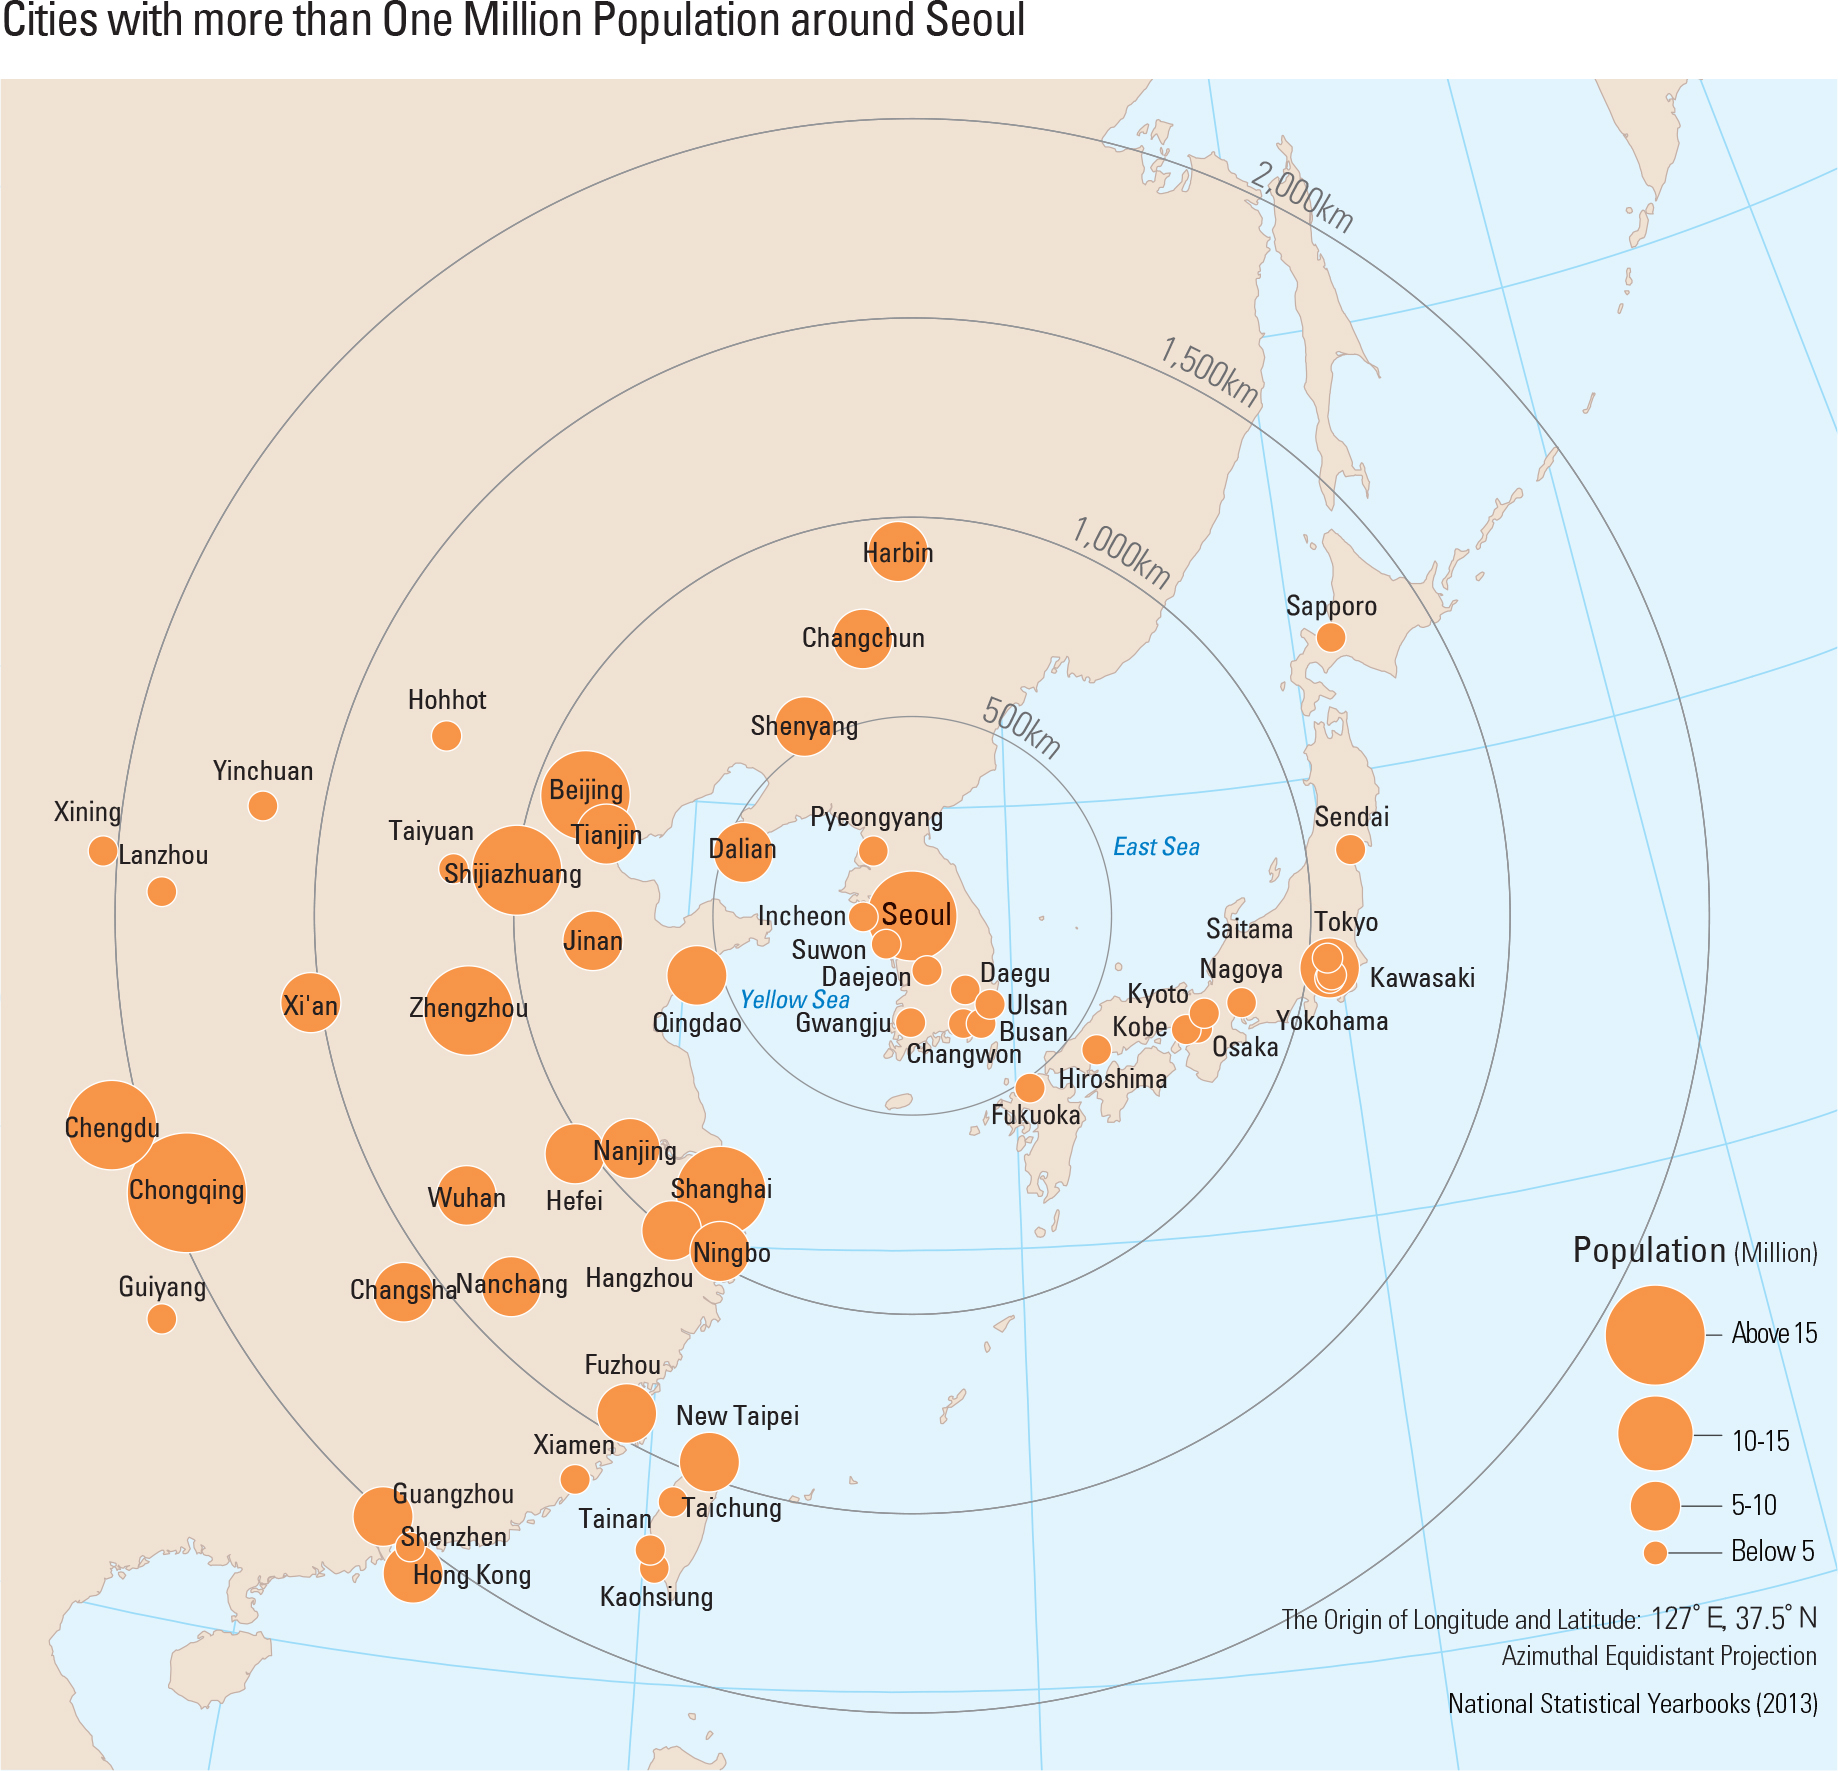 Cities with more than One Million Population around Seoul